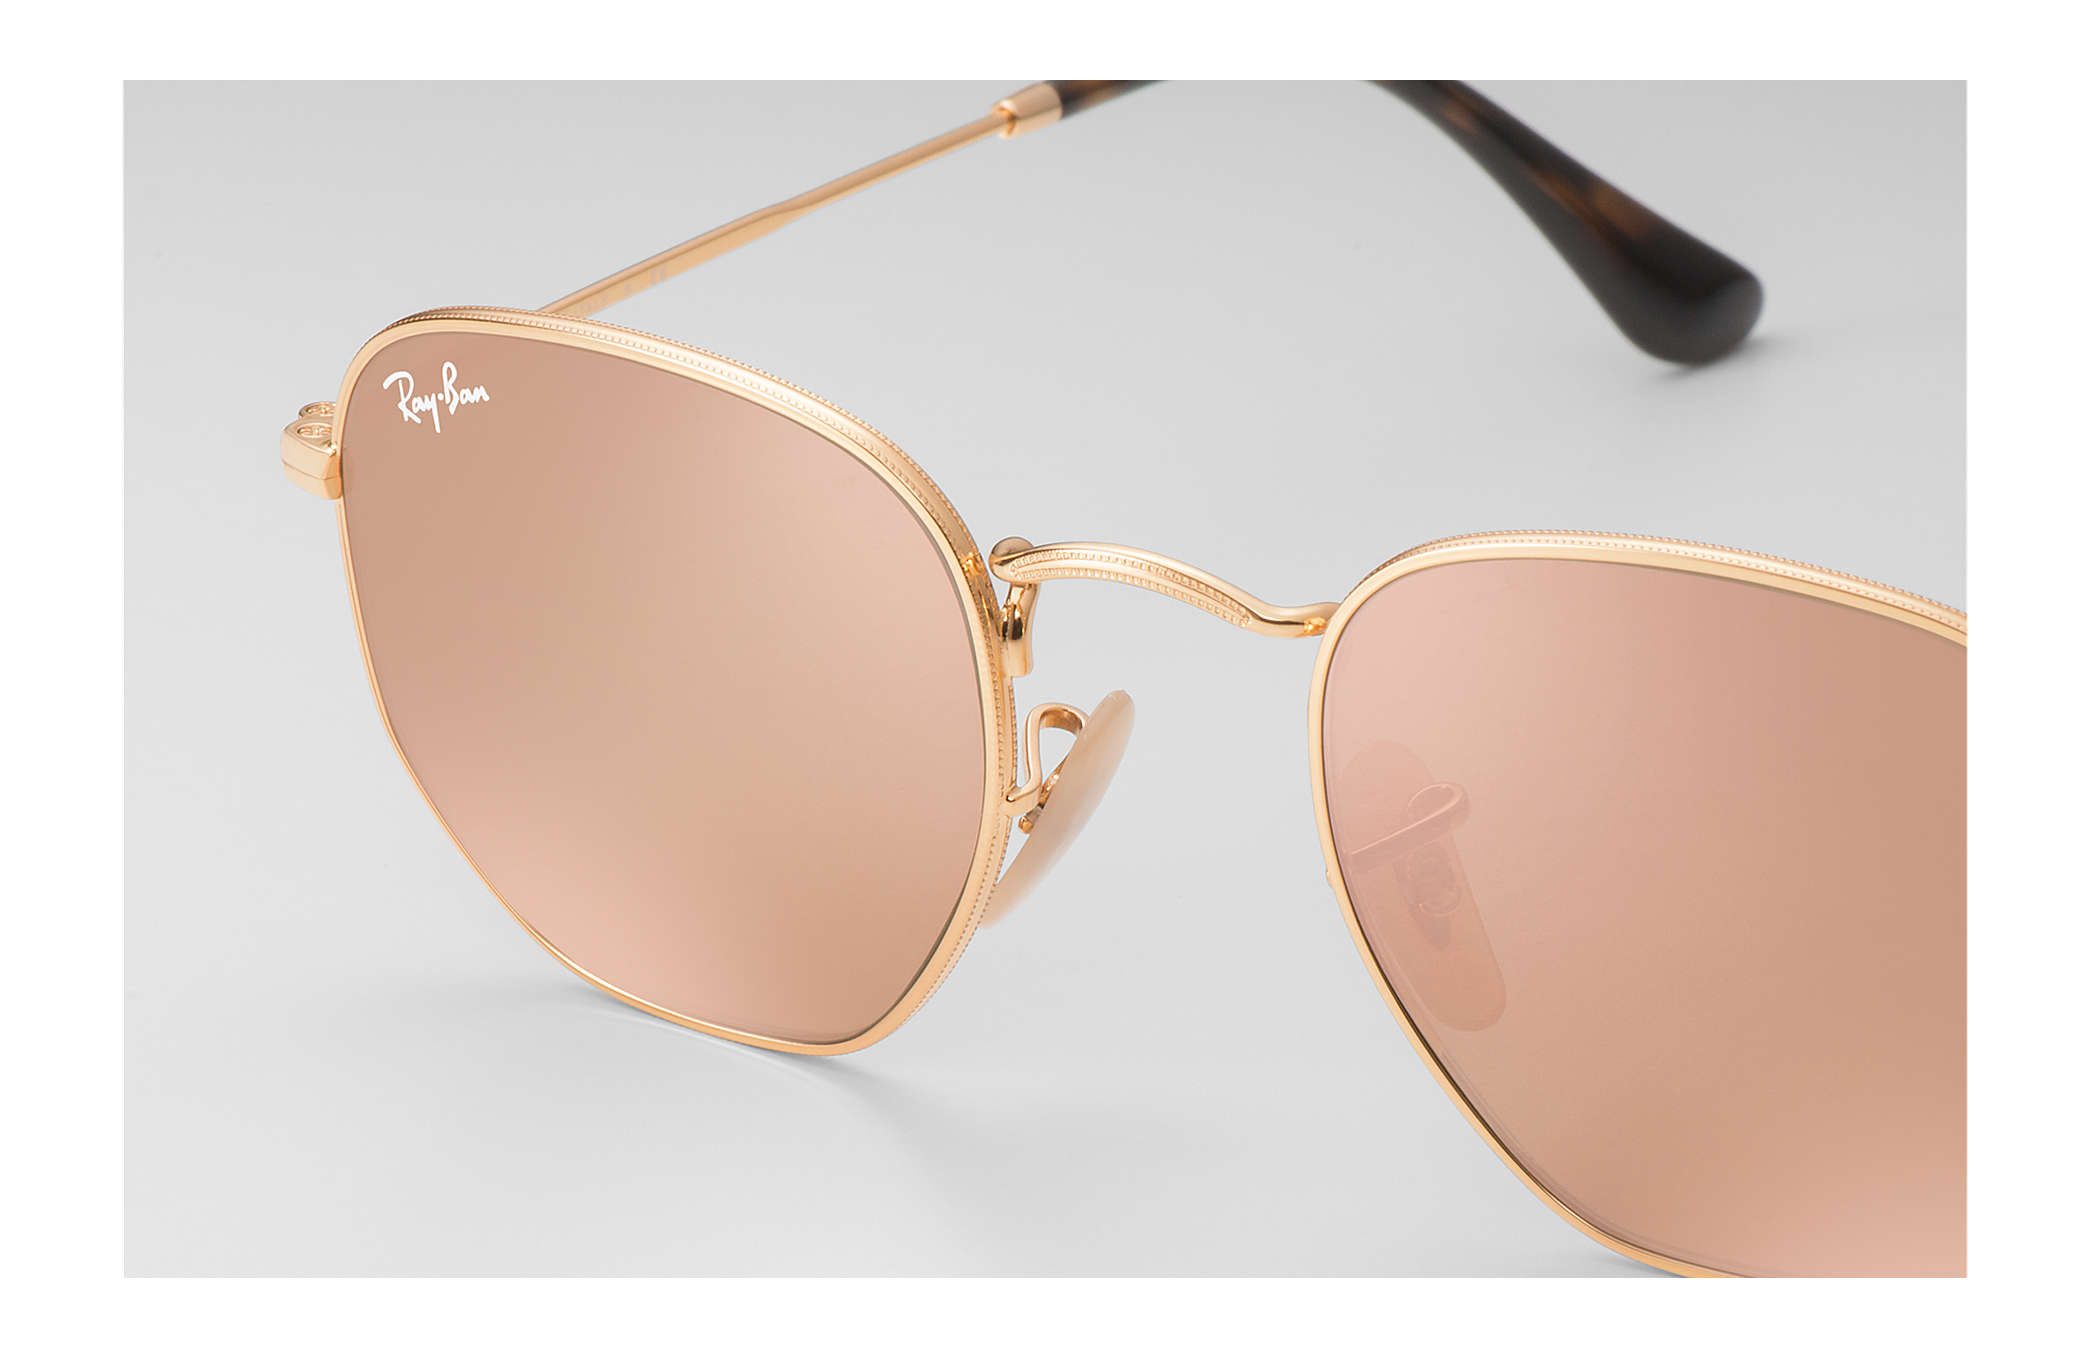 c3ad86aaacea8 Ray-Ban Hexagonal Flat Lenses RB3548N Gold - Metal - Copper Lenses ...